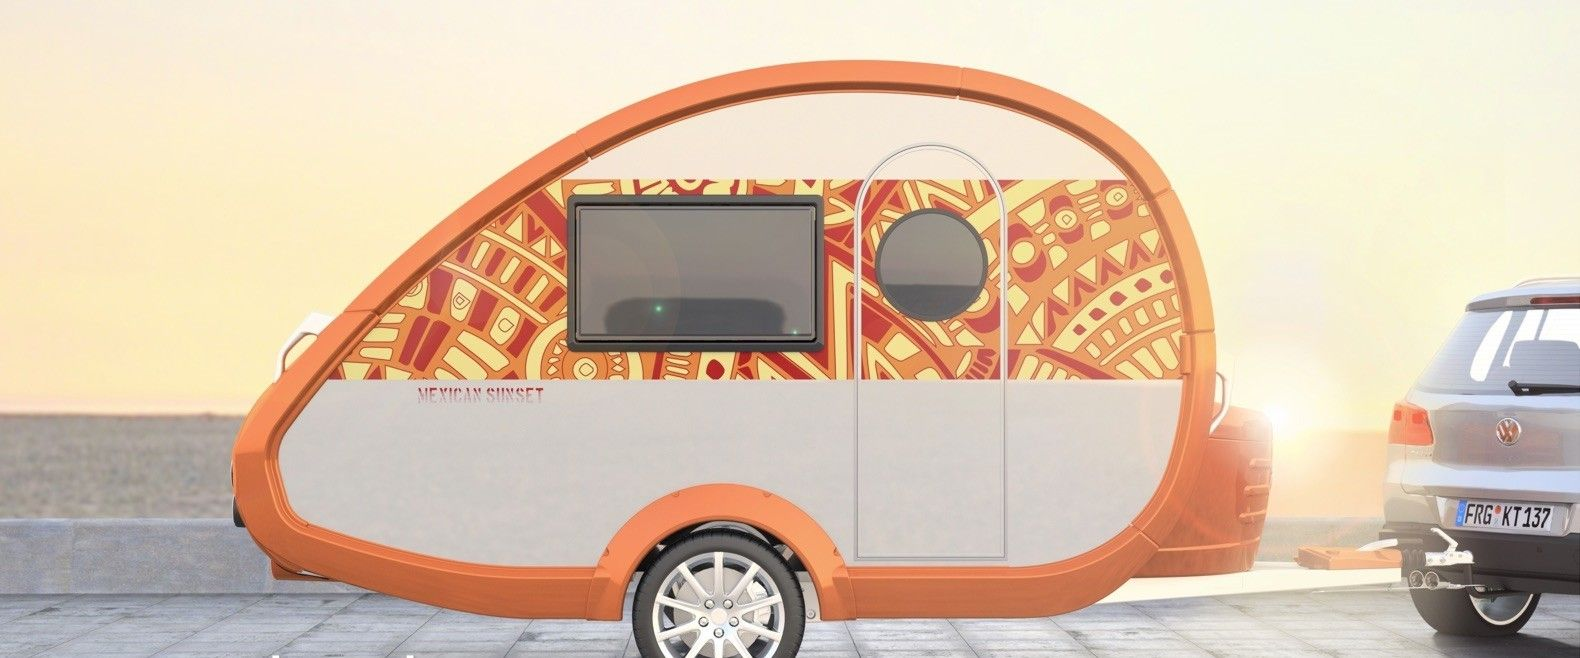 7 best tiny campers for a Fall road trip